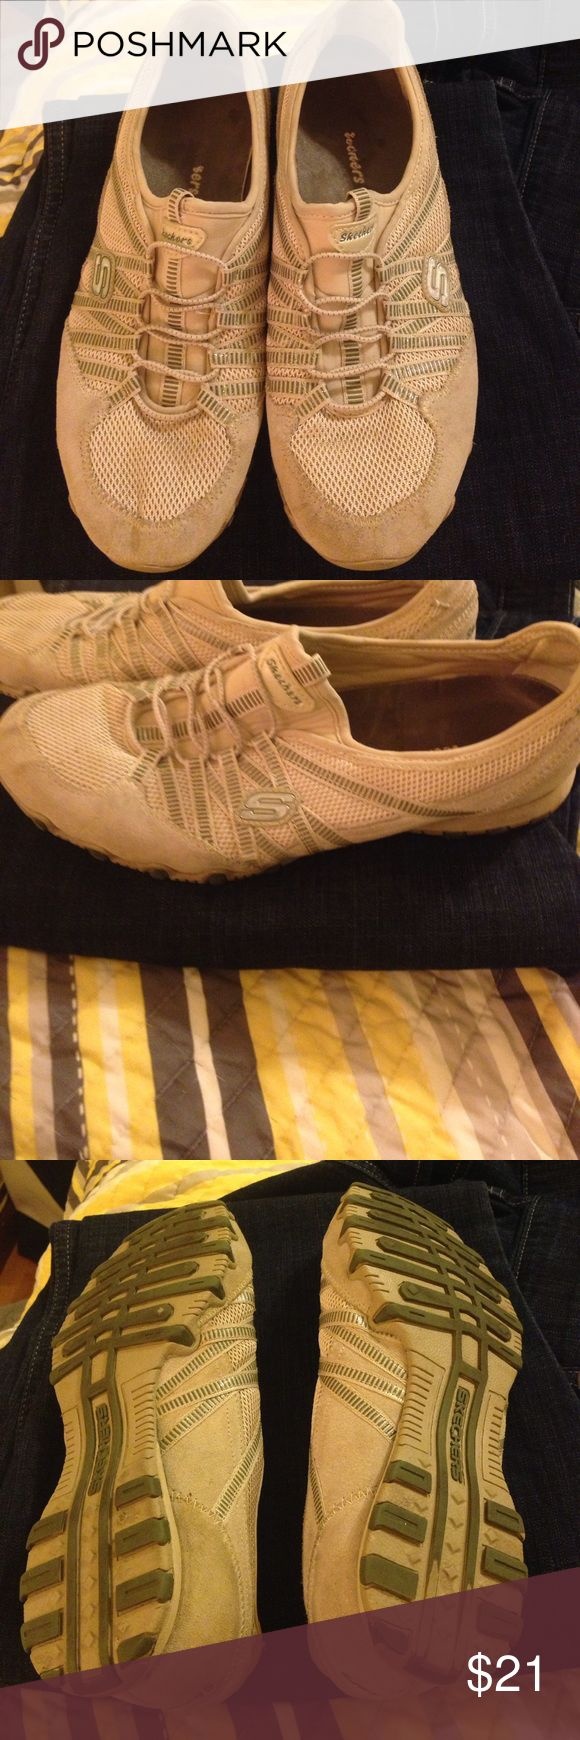 Skechers Shoes Great Condition Skecher Shoes. Minor dirt spots on the toes. Skechers Shoes Sneakers